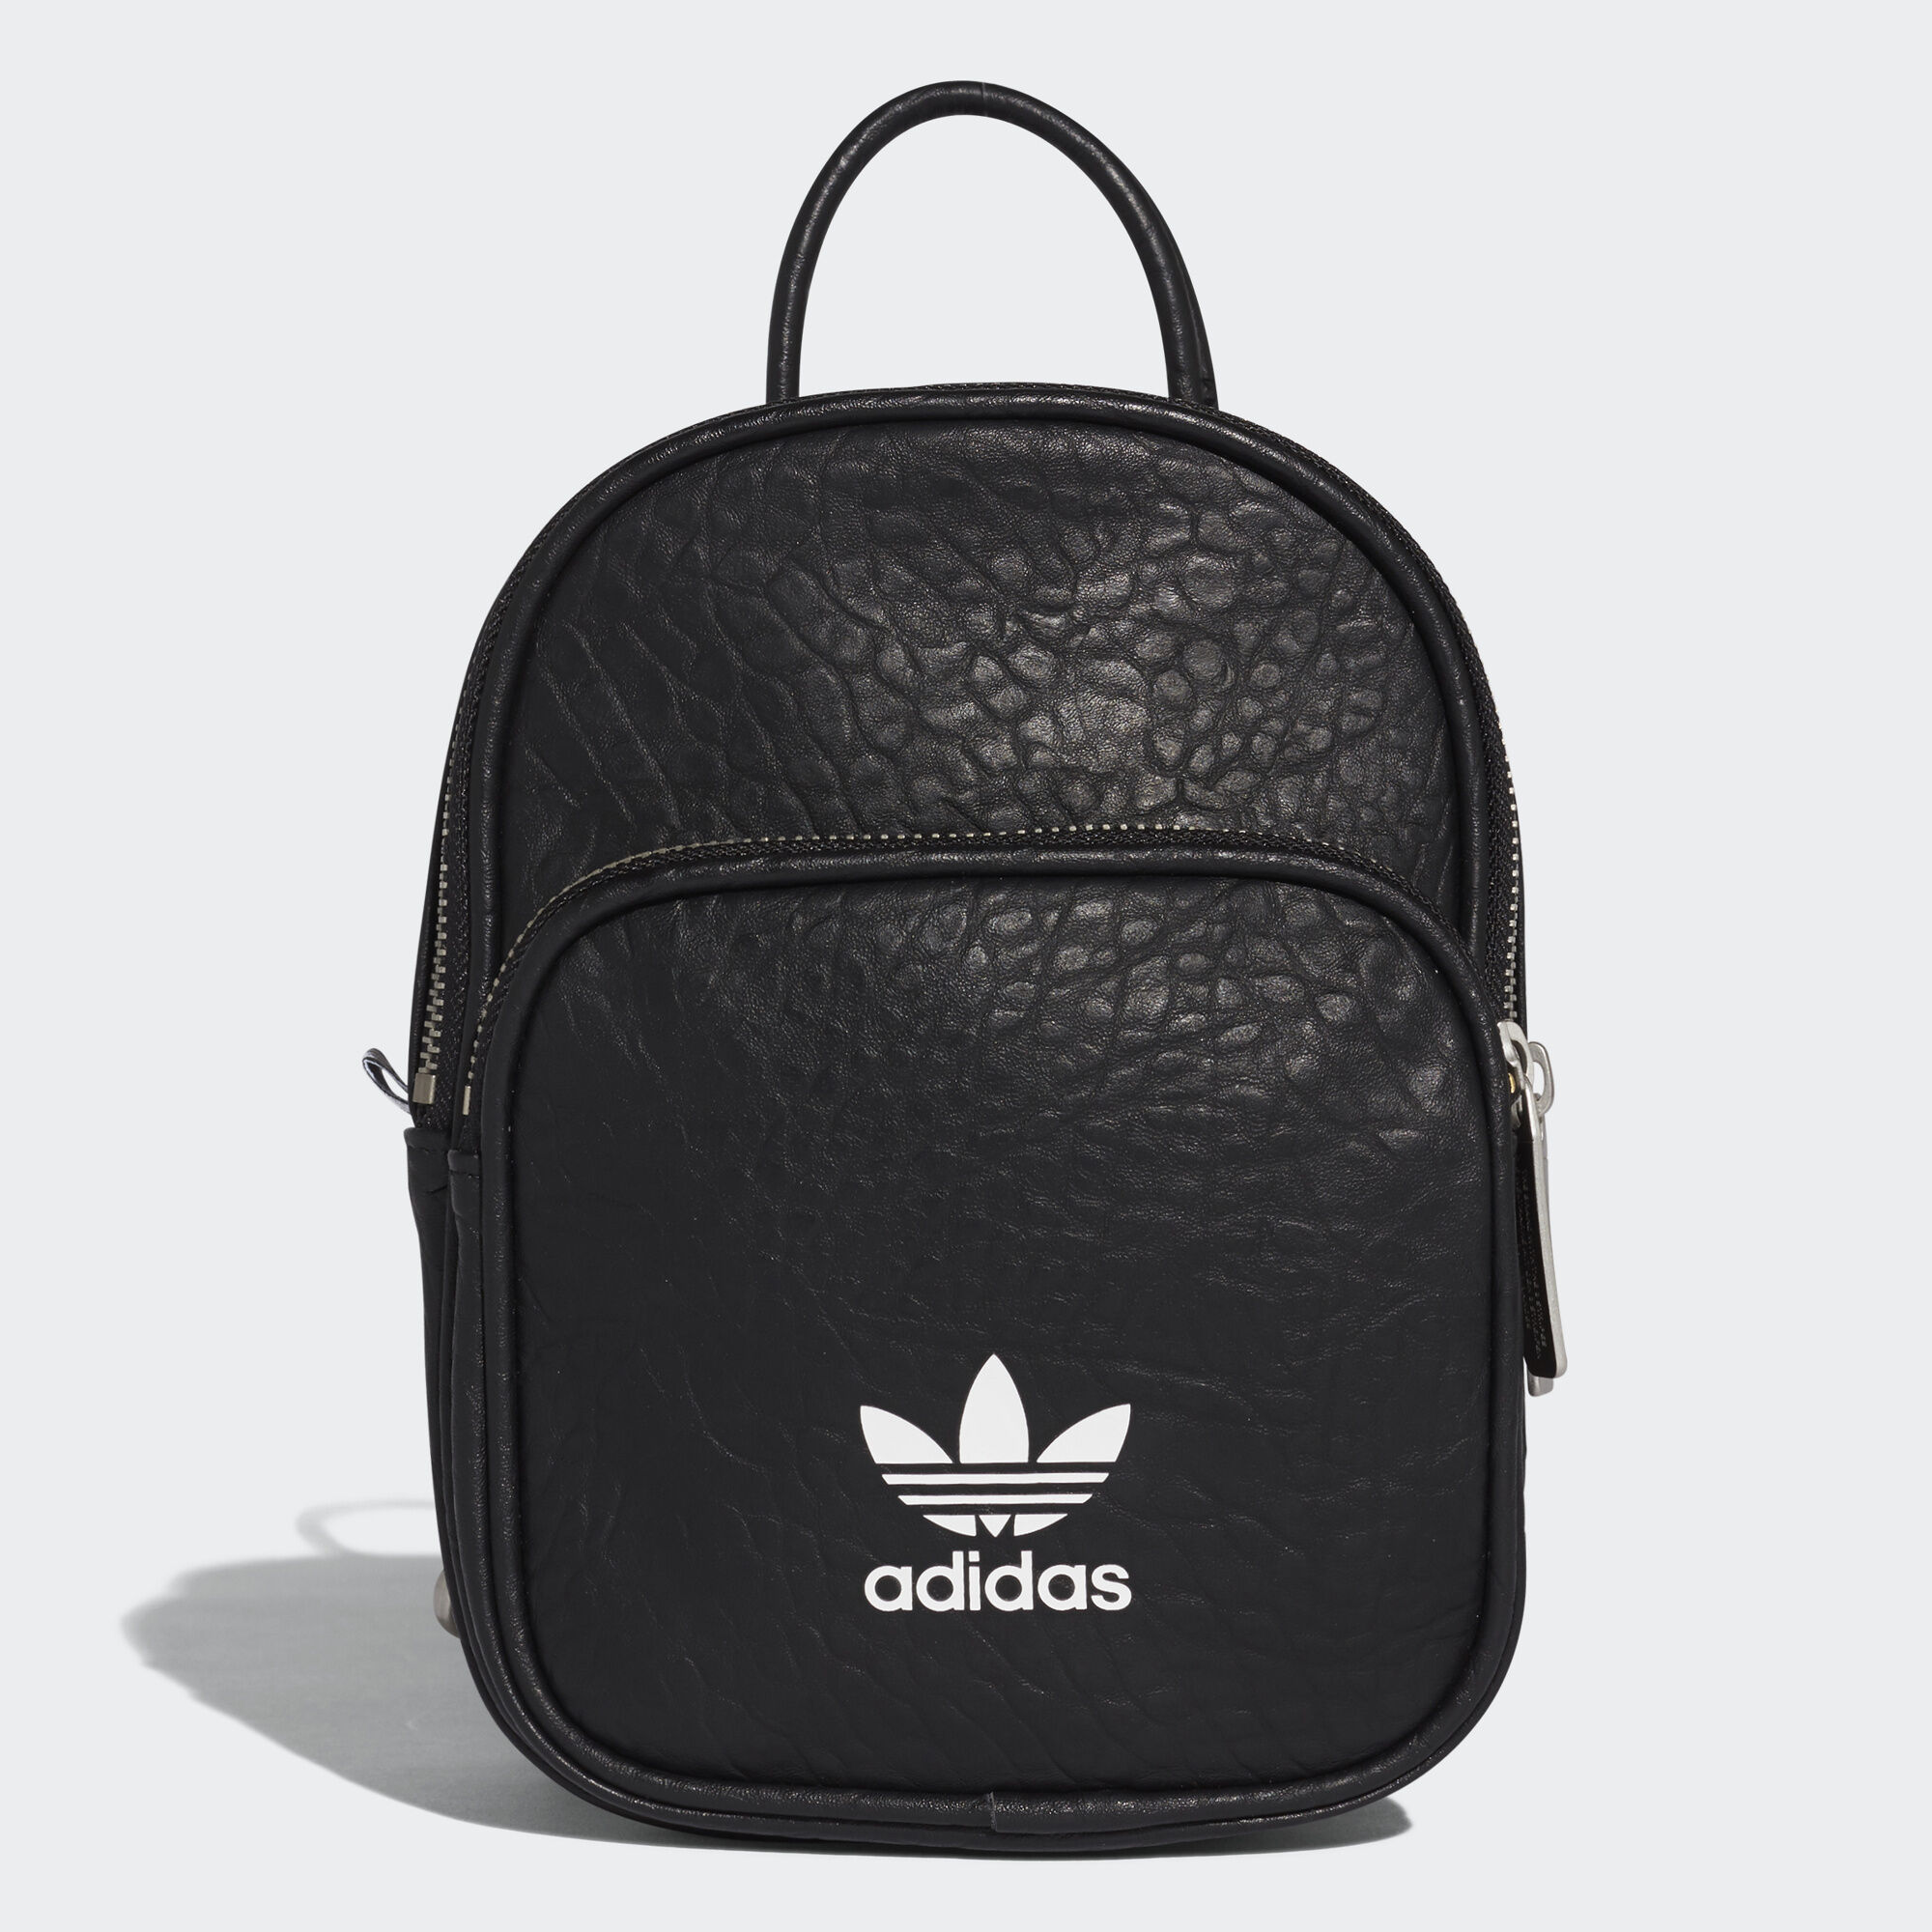 Where To Buy Adidas Mini Backpack - CEAGESP 39e0e7e5ff